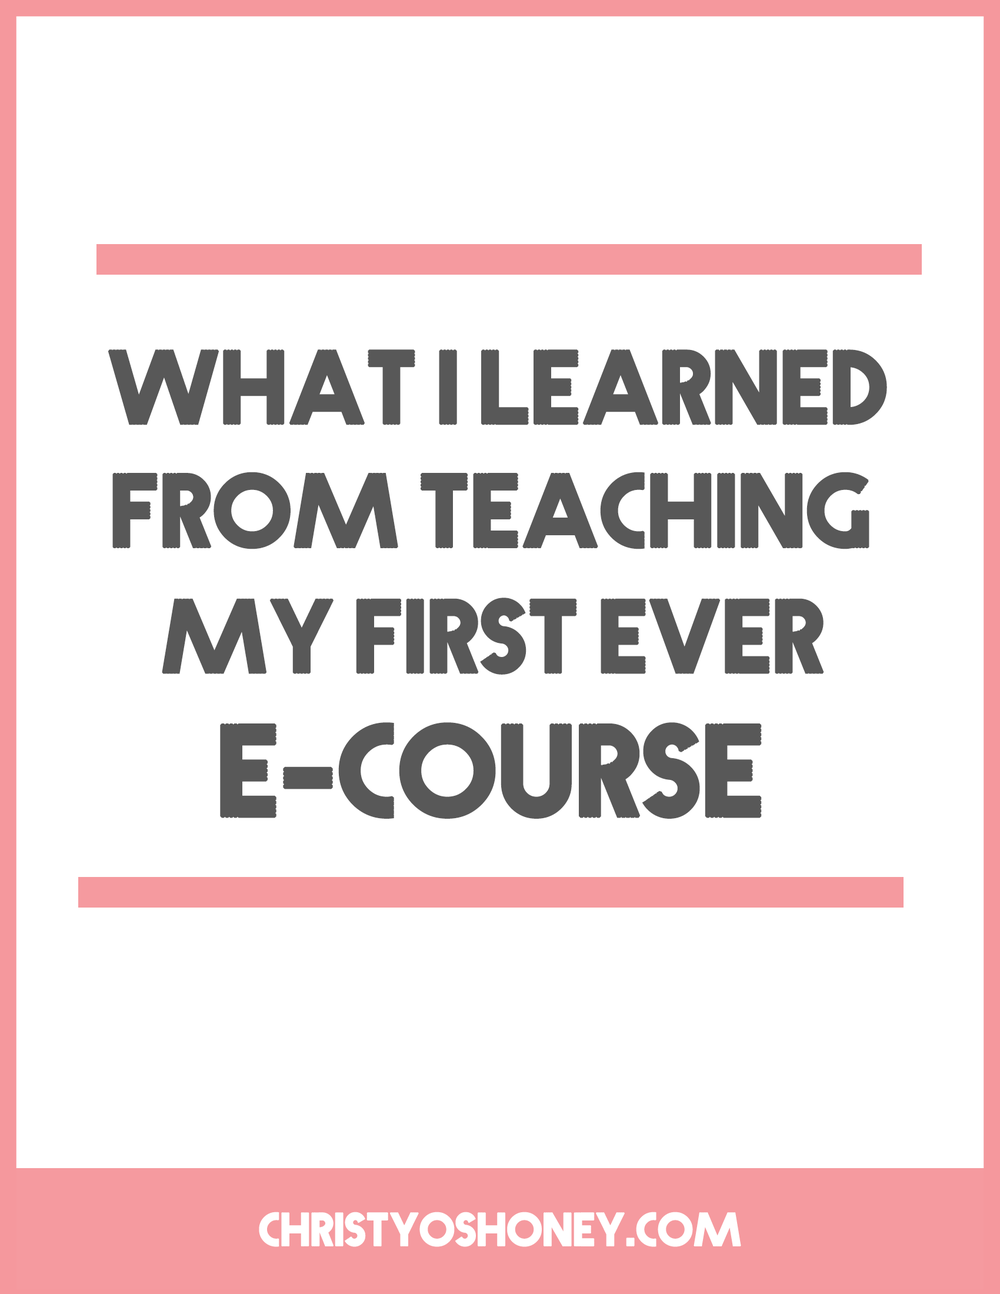 In teaching your an e-course, you may end up learning just as much as your students. In this post, I've included some of the lessons I learned from the amazing individuals who joined me for my first ever course on creative confidence, Do The Damn Thing. Click through to get the full scoop!